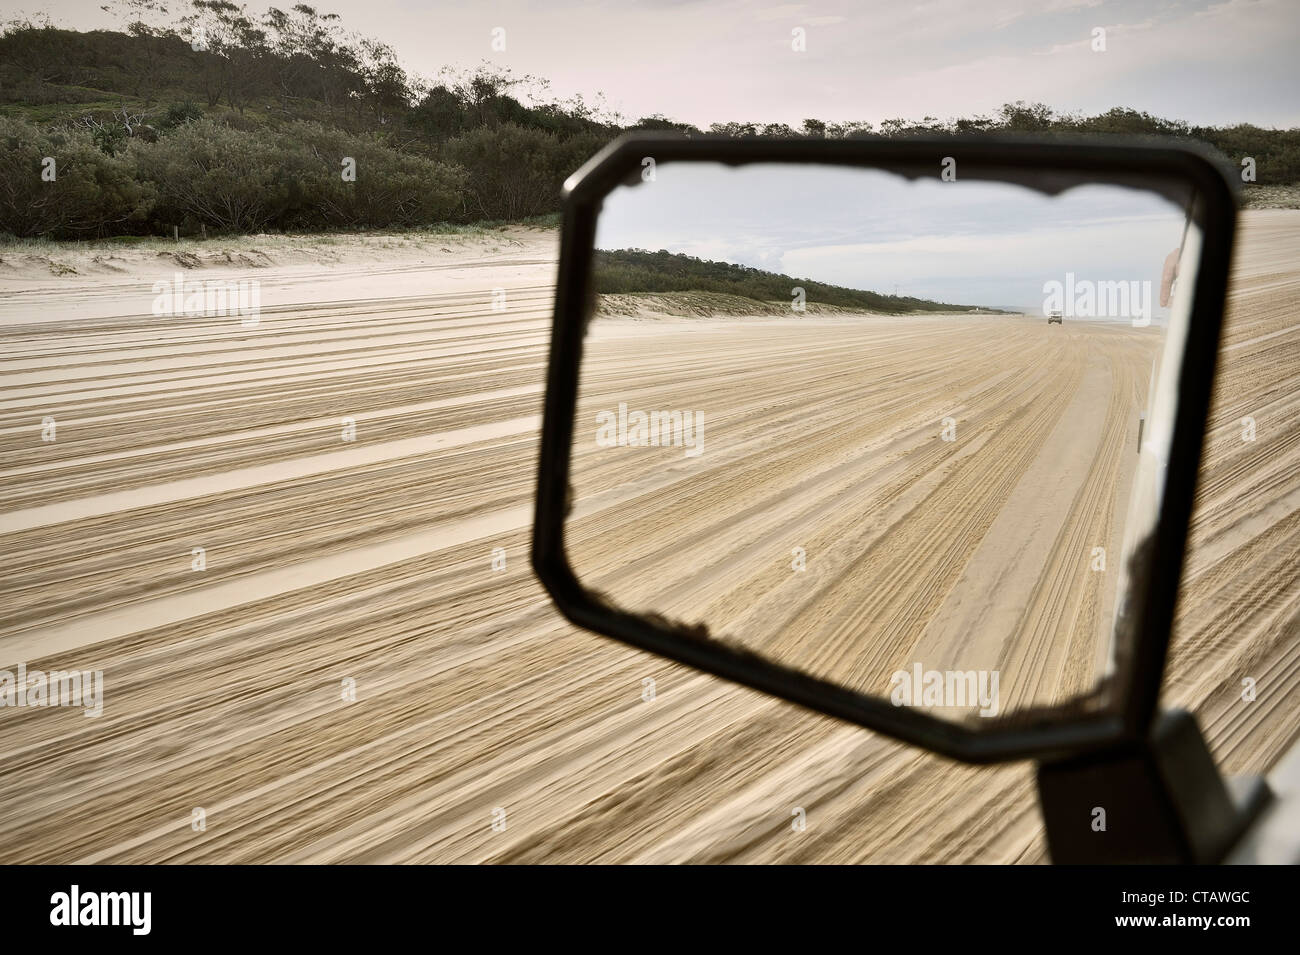 Offroad vehicle in mirror while driving at sand island, Fraser Island, UNESCO world herritage, Queensland, Australia - Stock Image